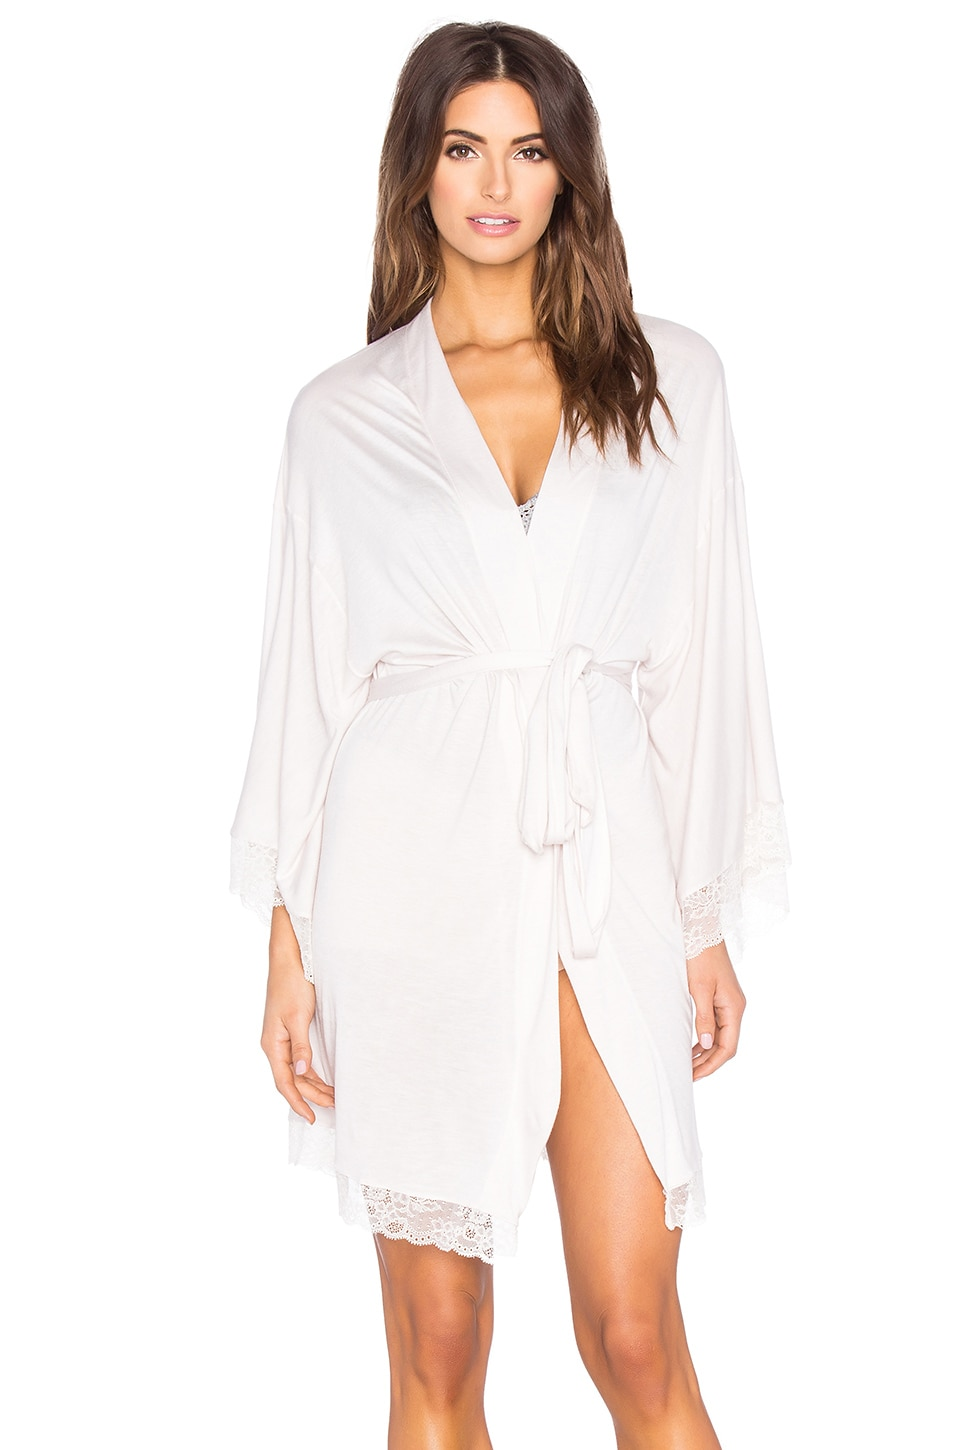 eberjey Enchanted Kimono Robe in Lotus